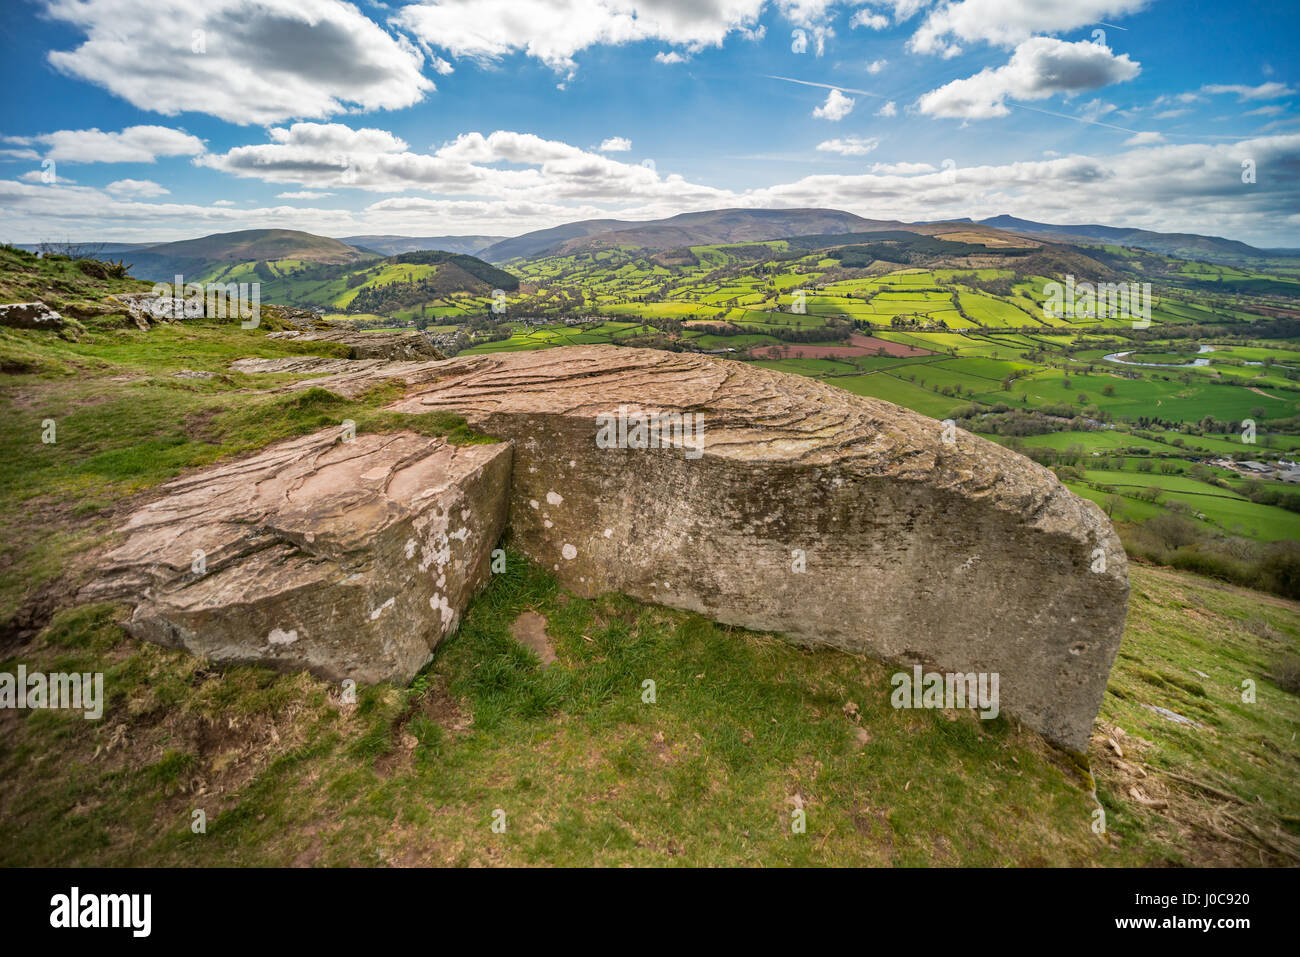 View over Usk valley to Brecon Beacons from Allt yr esgair hillside. Large rock with rippled pattern in foreground. - Stock Image